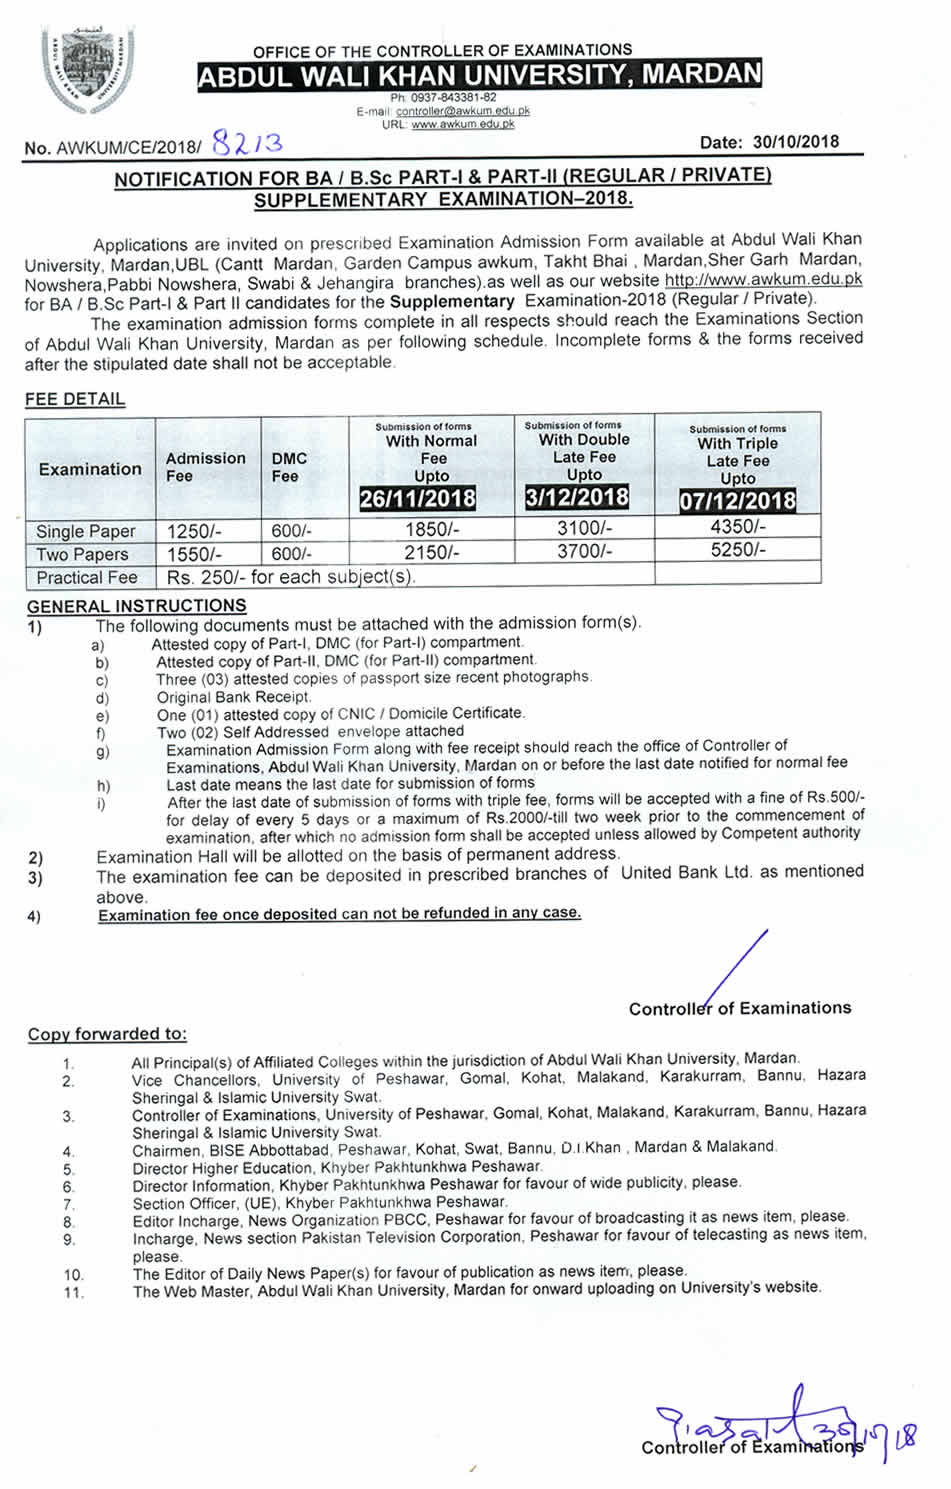 Abdul Wali Khan University Mardan: Notification For BA / B